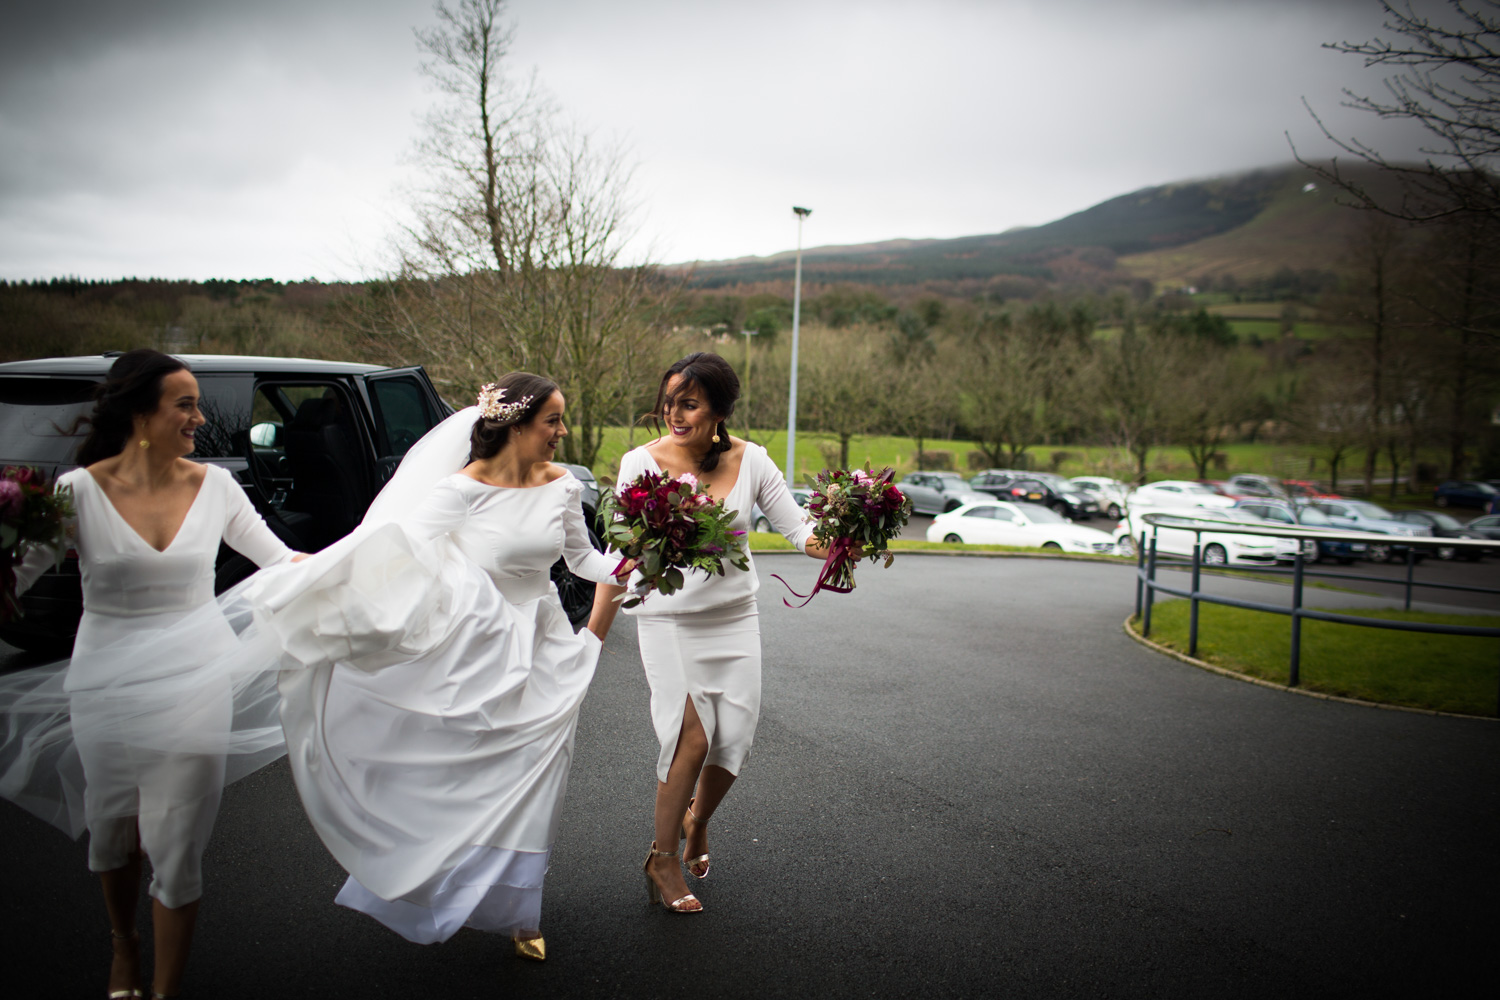 Mark_Barnes_Northern_Ireland_wedding_photographer_Innishowen_Gateway_Donegal_Wedding_photography_Donegal_wedding_photographer-17.jpg